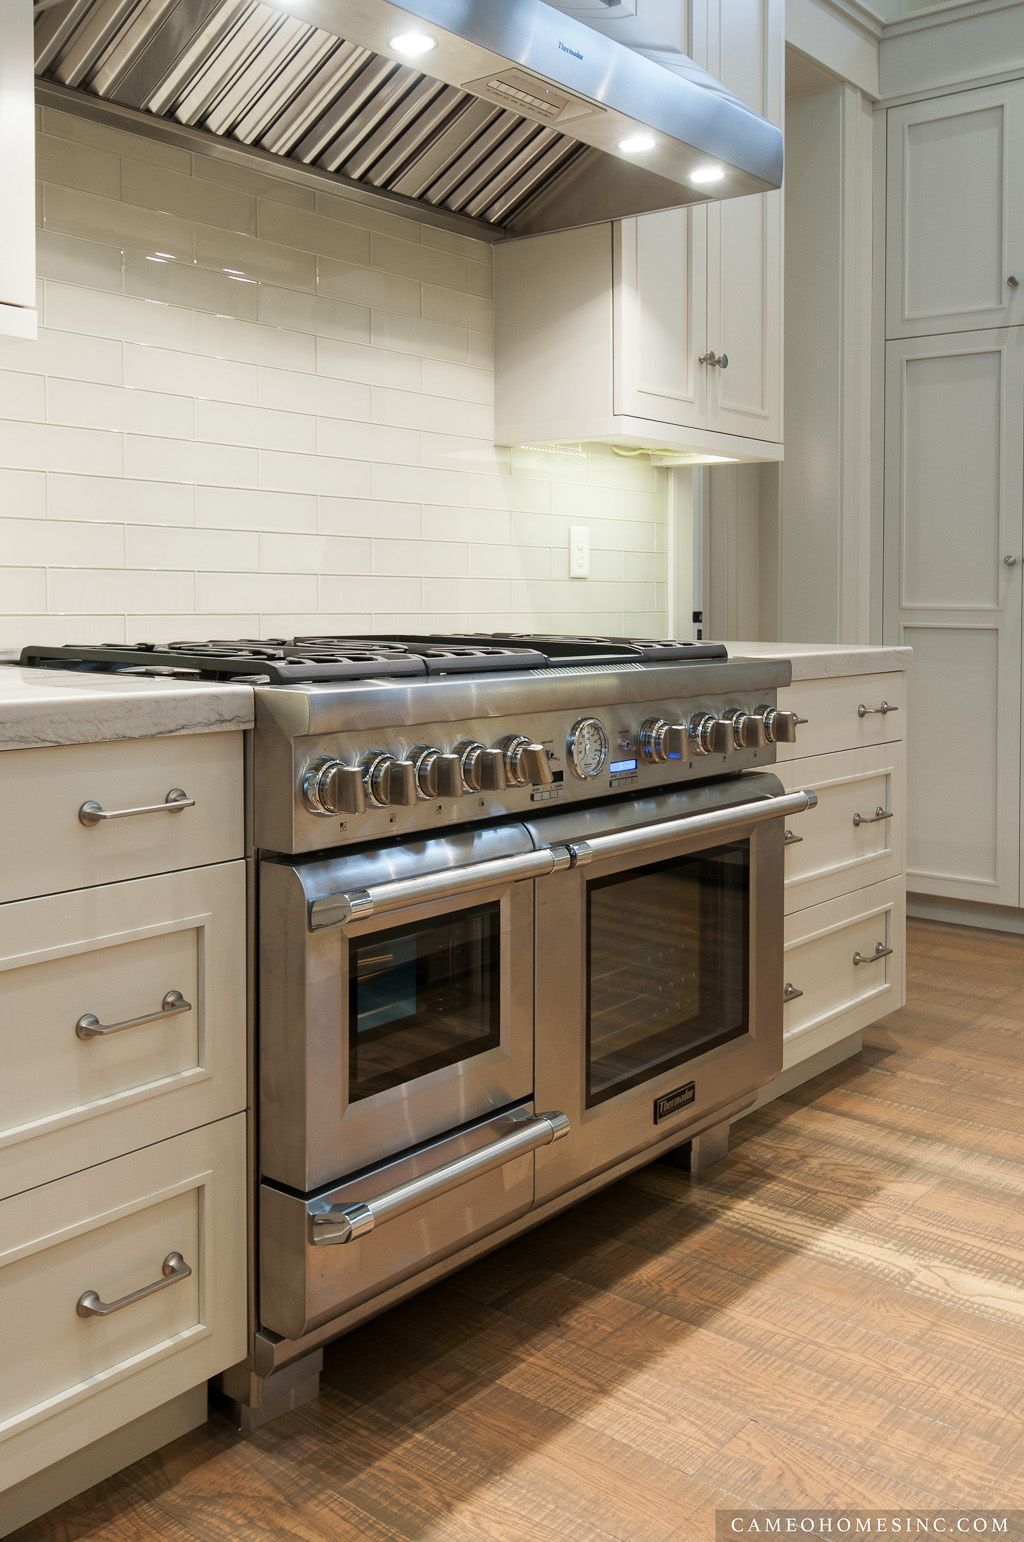 Beautiful kitchen with thermador ovens and range my for Wok cuatro cocinas granollers